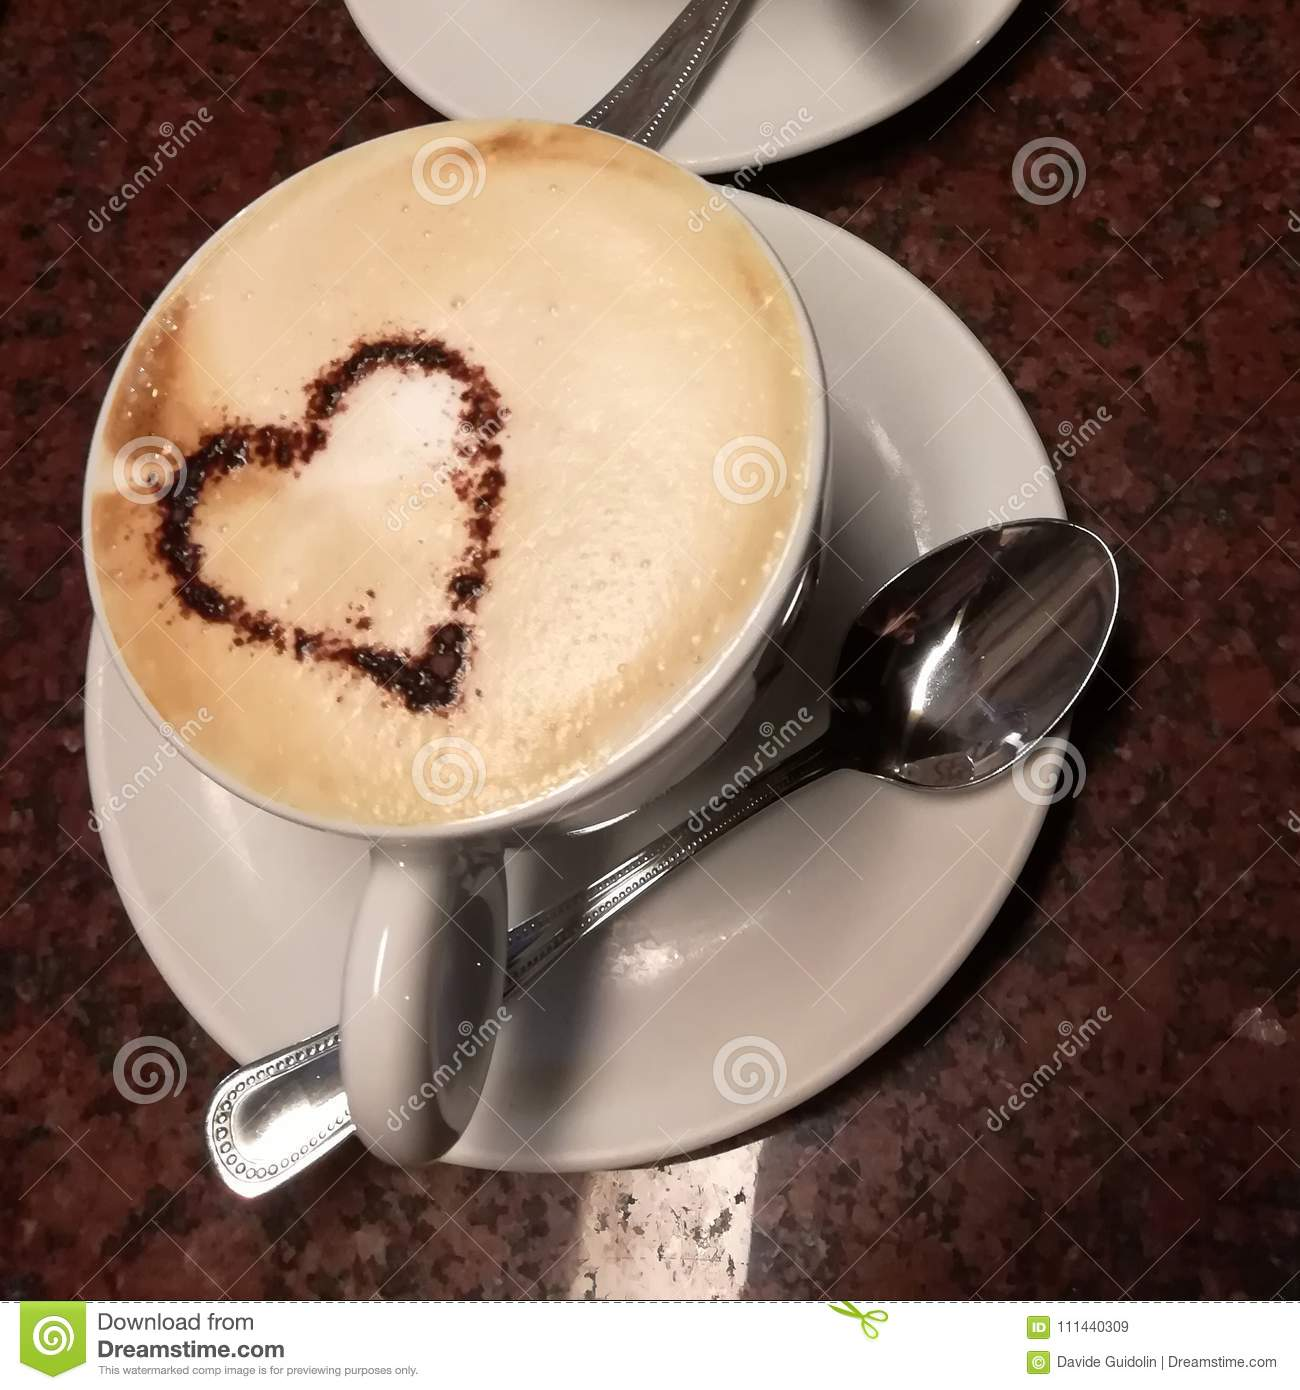 Cappuccino With Heart Shape Decoration Stock Image - Image ...